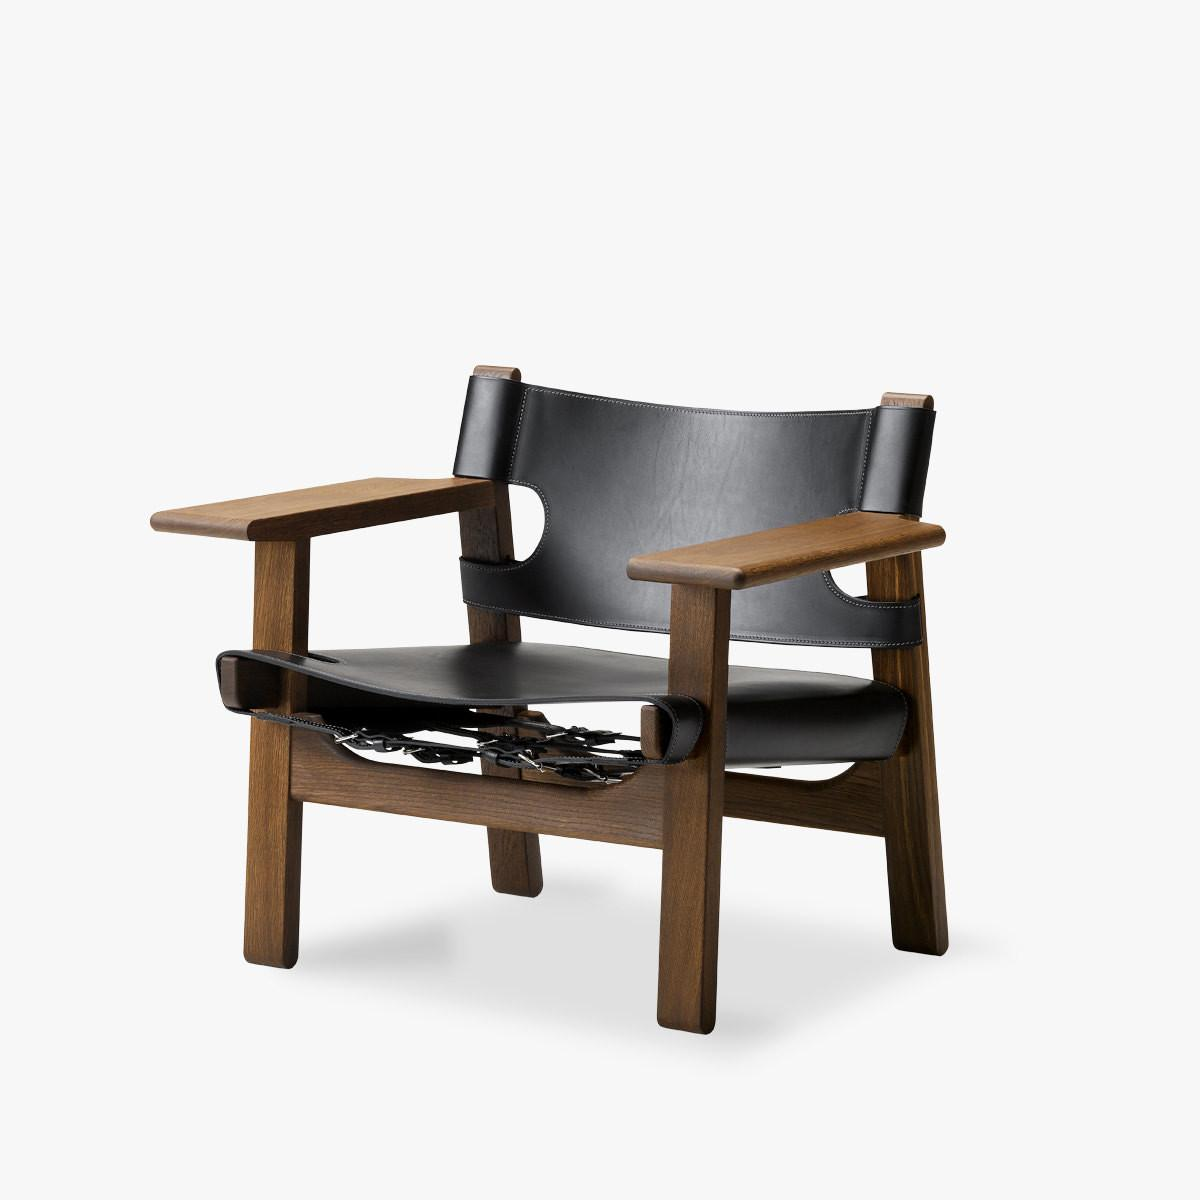 Spanish Furniture Awesome Innovative Home Design